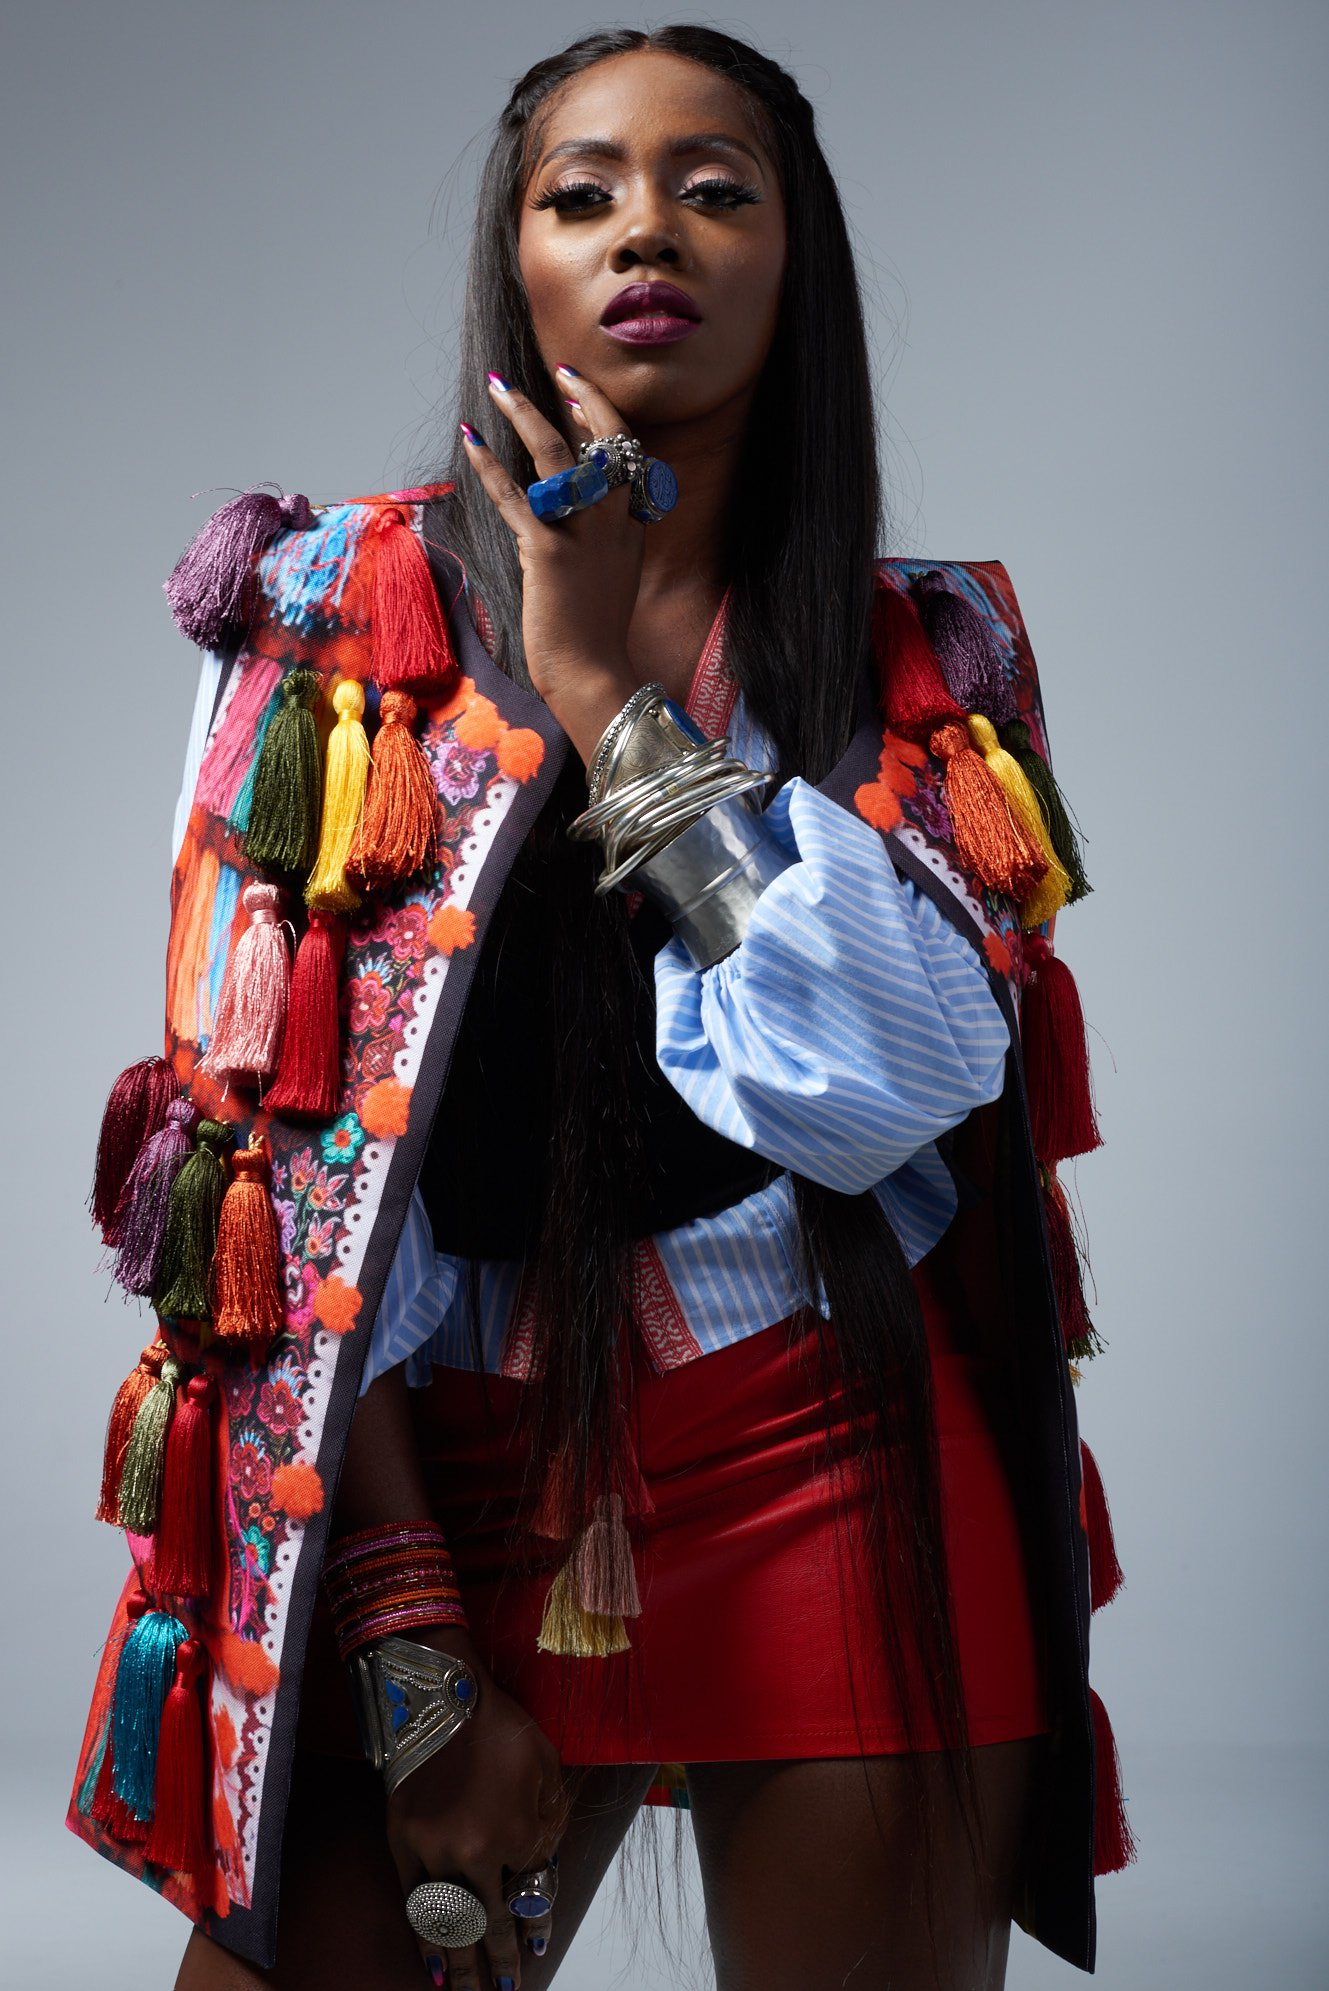 Tiwa Savage - Press Shots0147.jpg